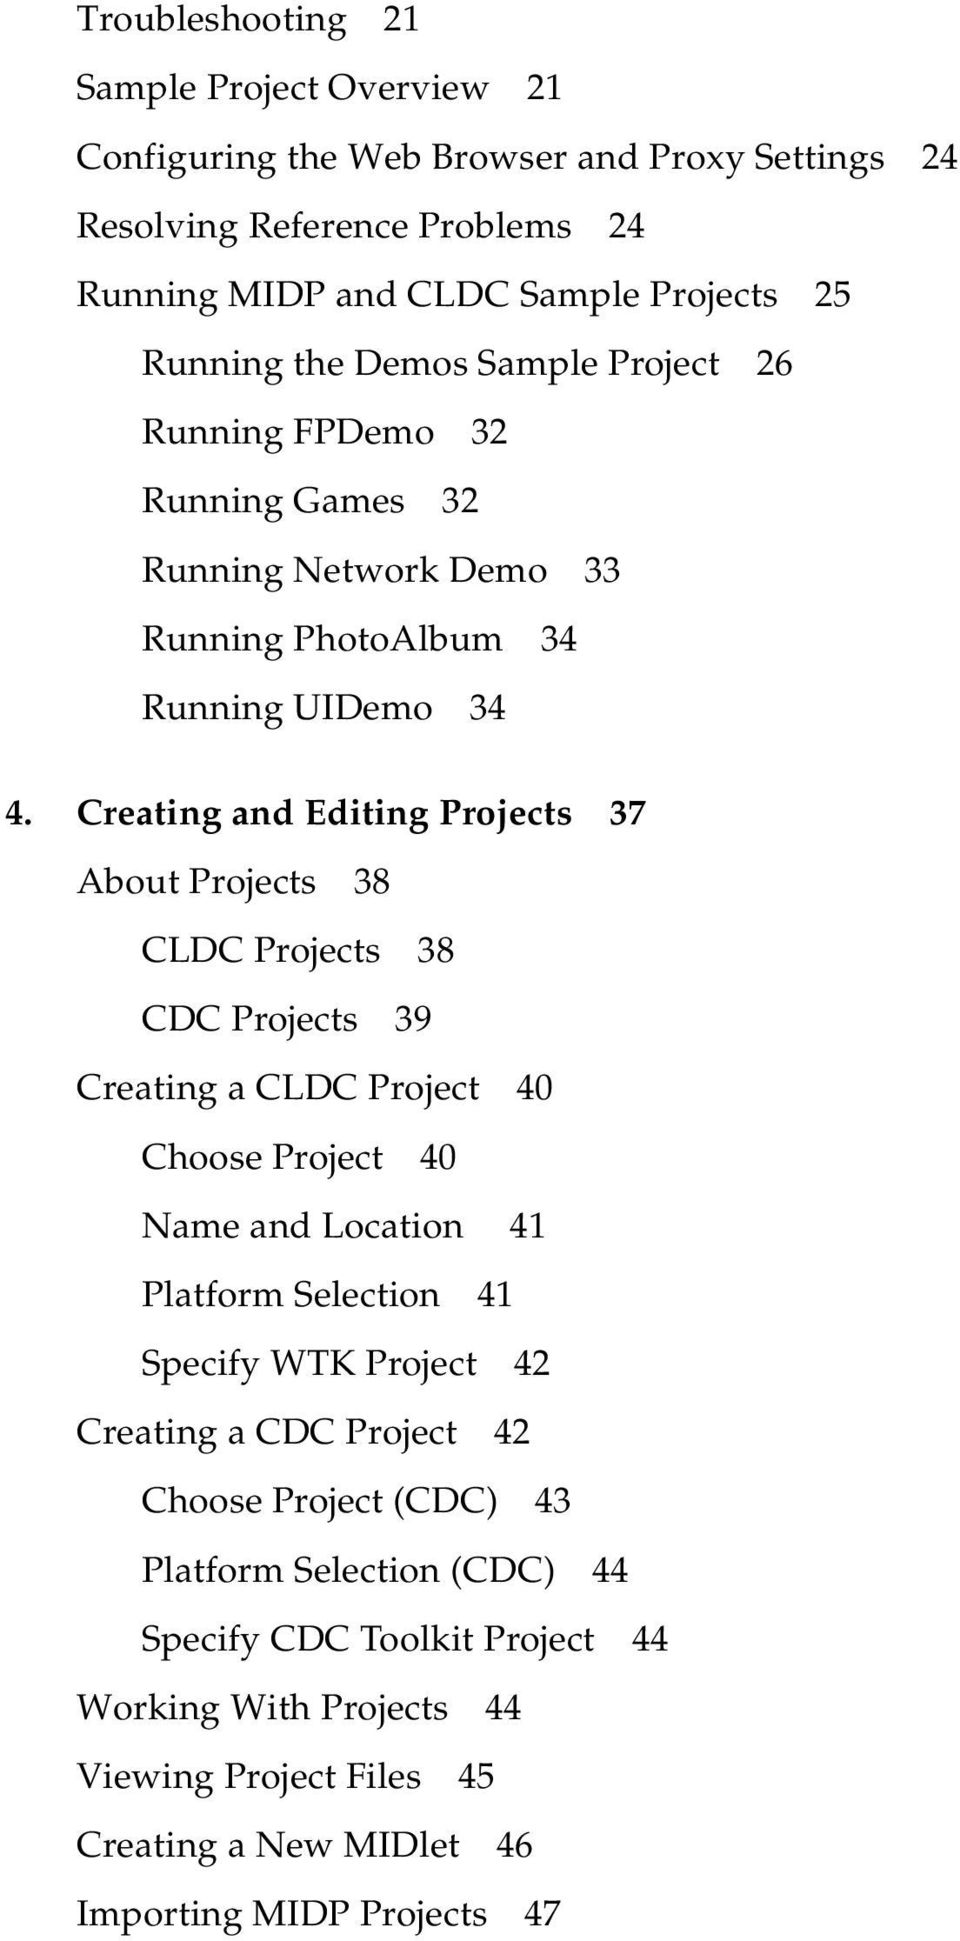 Creating and Editing Projects 37 About Projects 38 CLDC Projects 38 CDC Projects 39 Creating a CLDC Project 40 Choose Project 40 Name and Location 41 Platform Selection 41